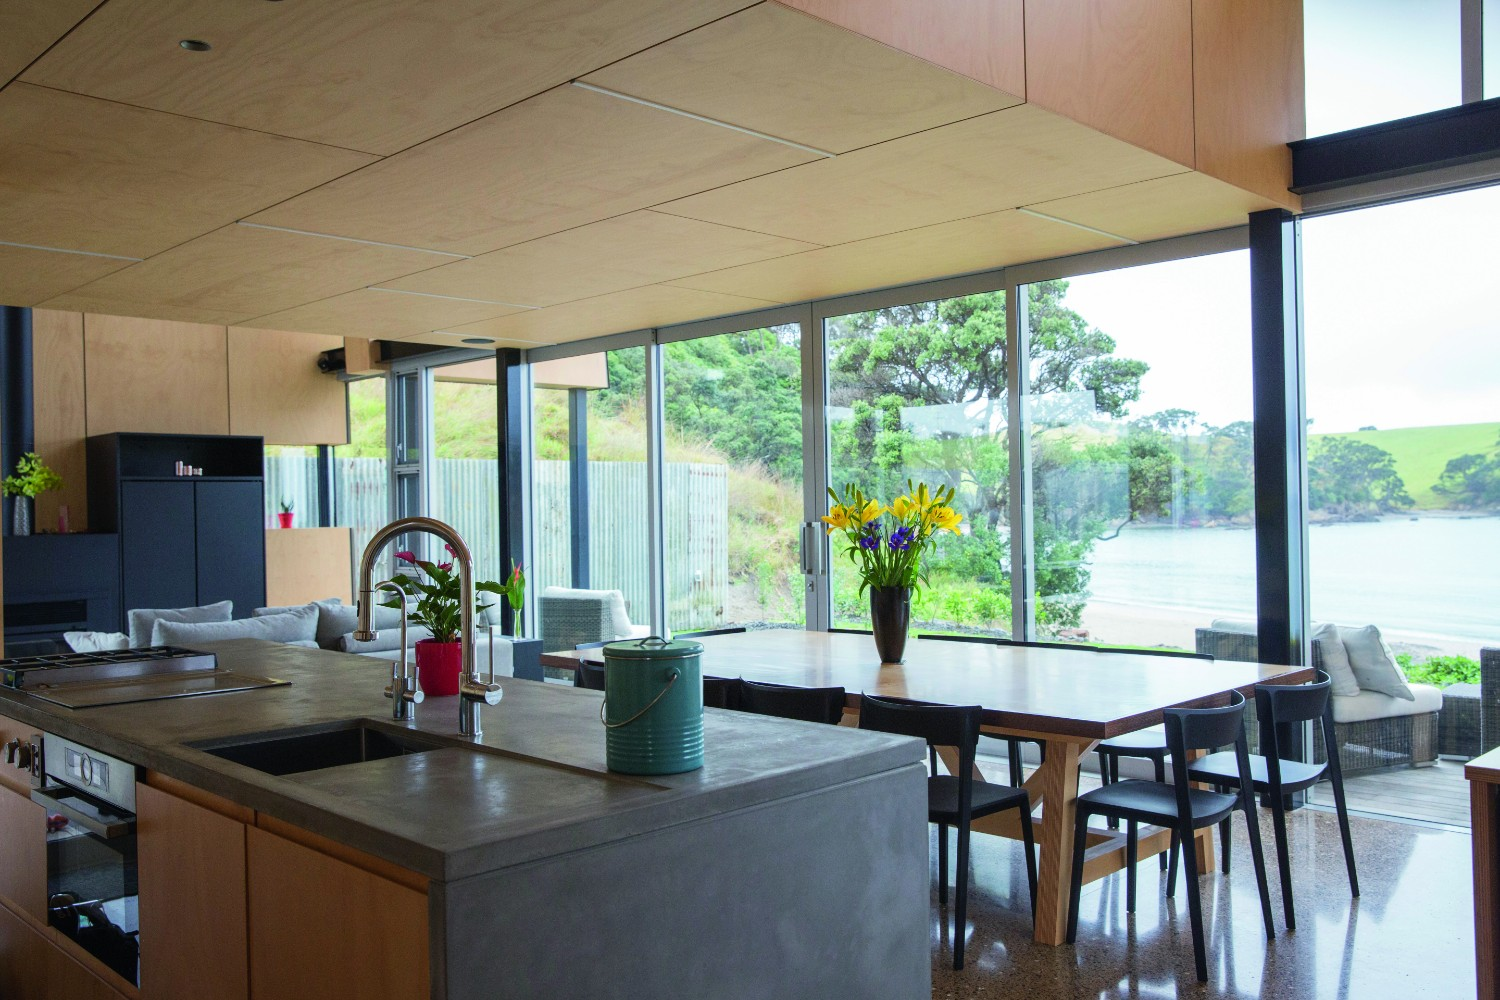 Grand Designs Australia: Rusty reveal - modern bach house - interior kitchen